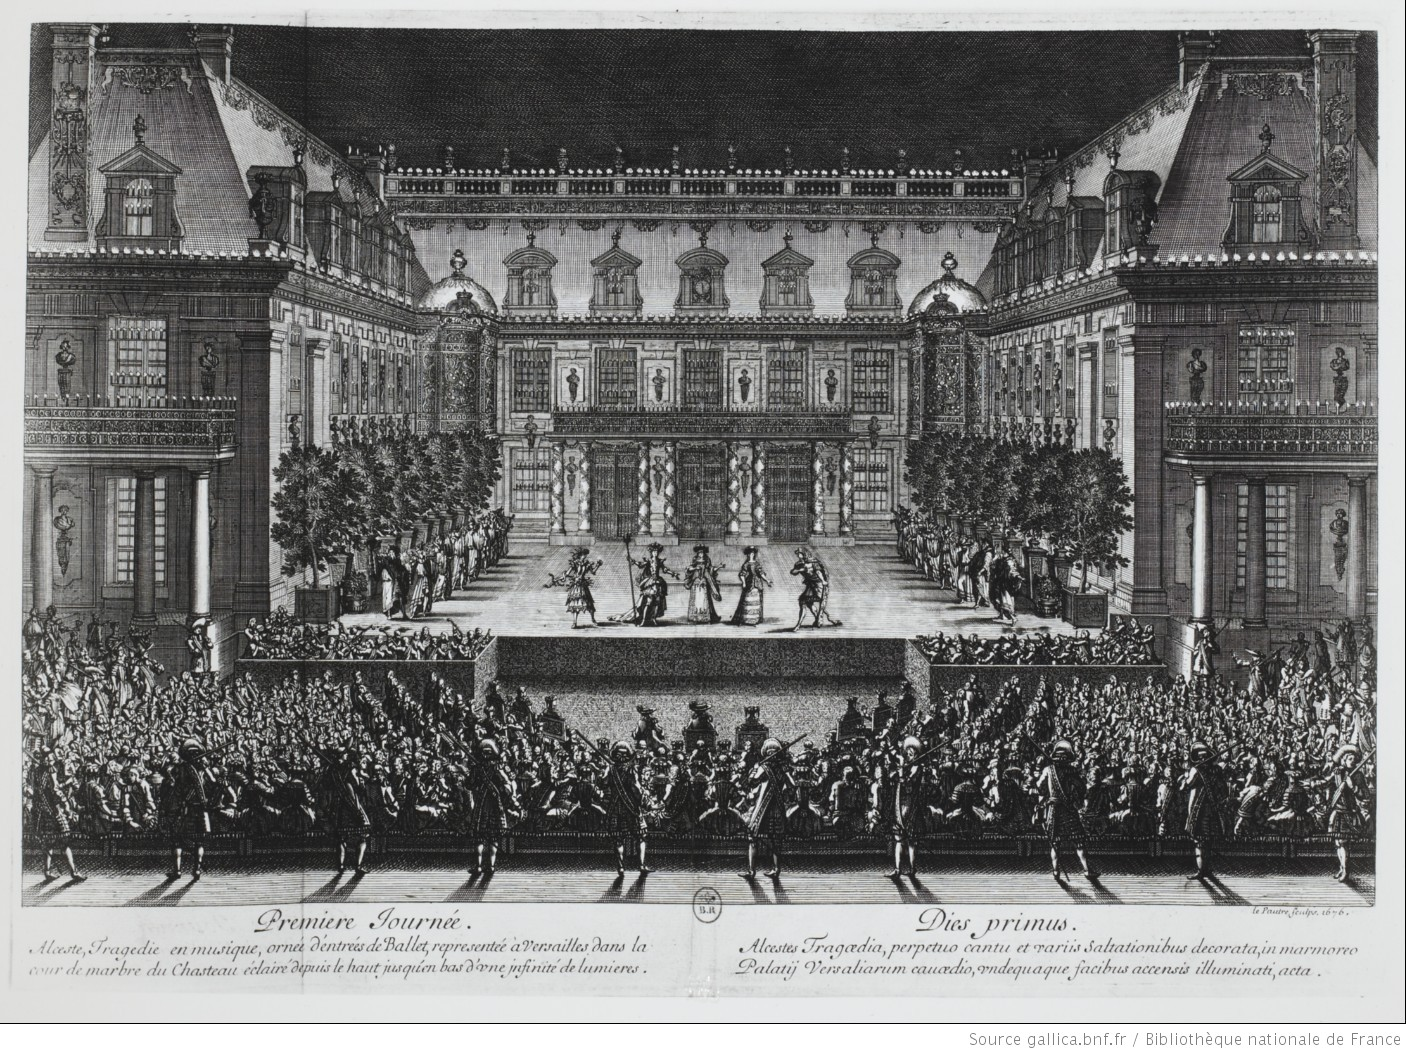 Concert at a castle featured in a black and white print.